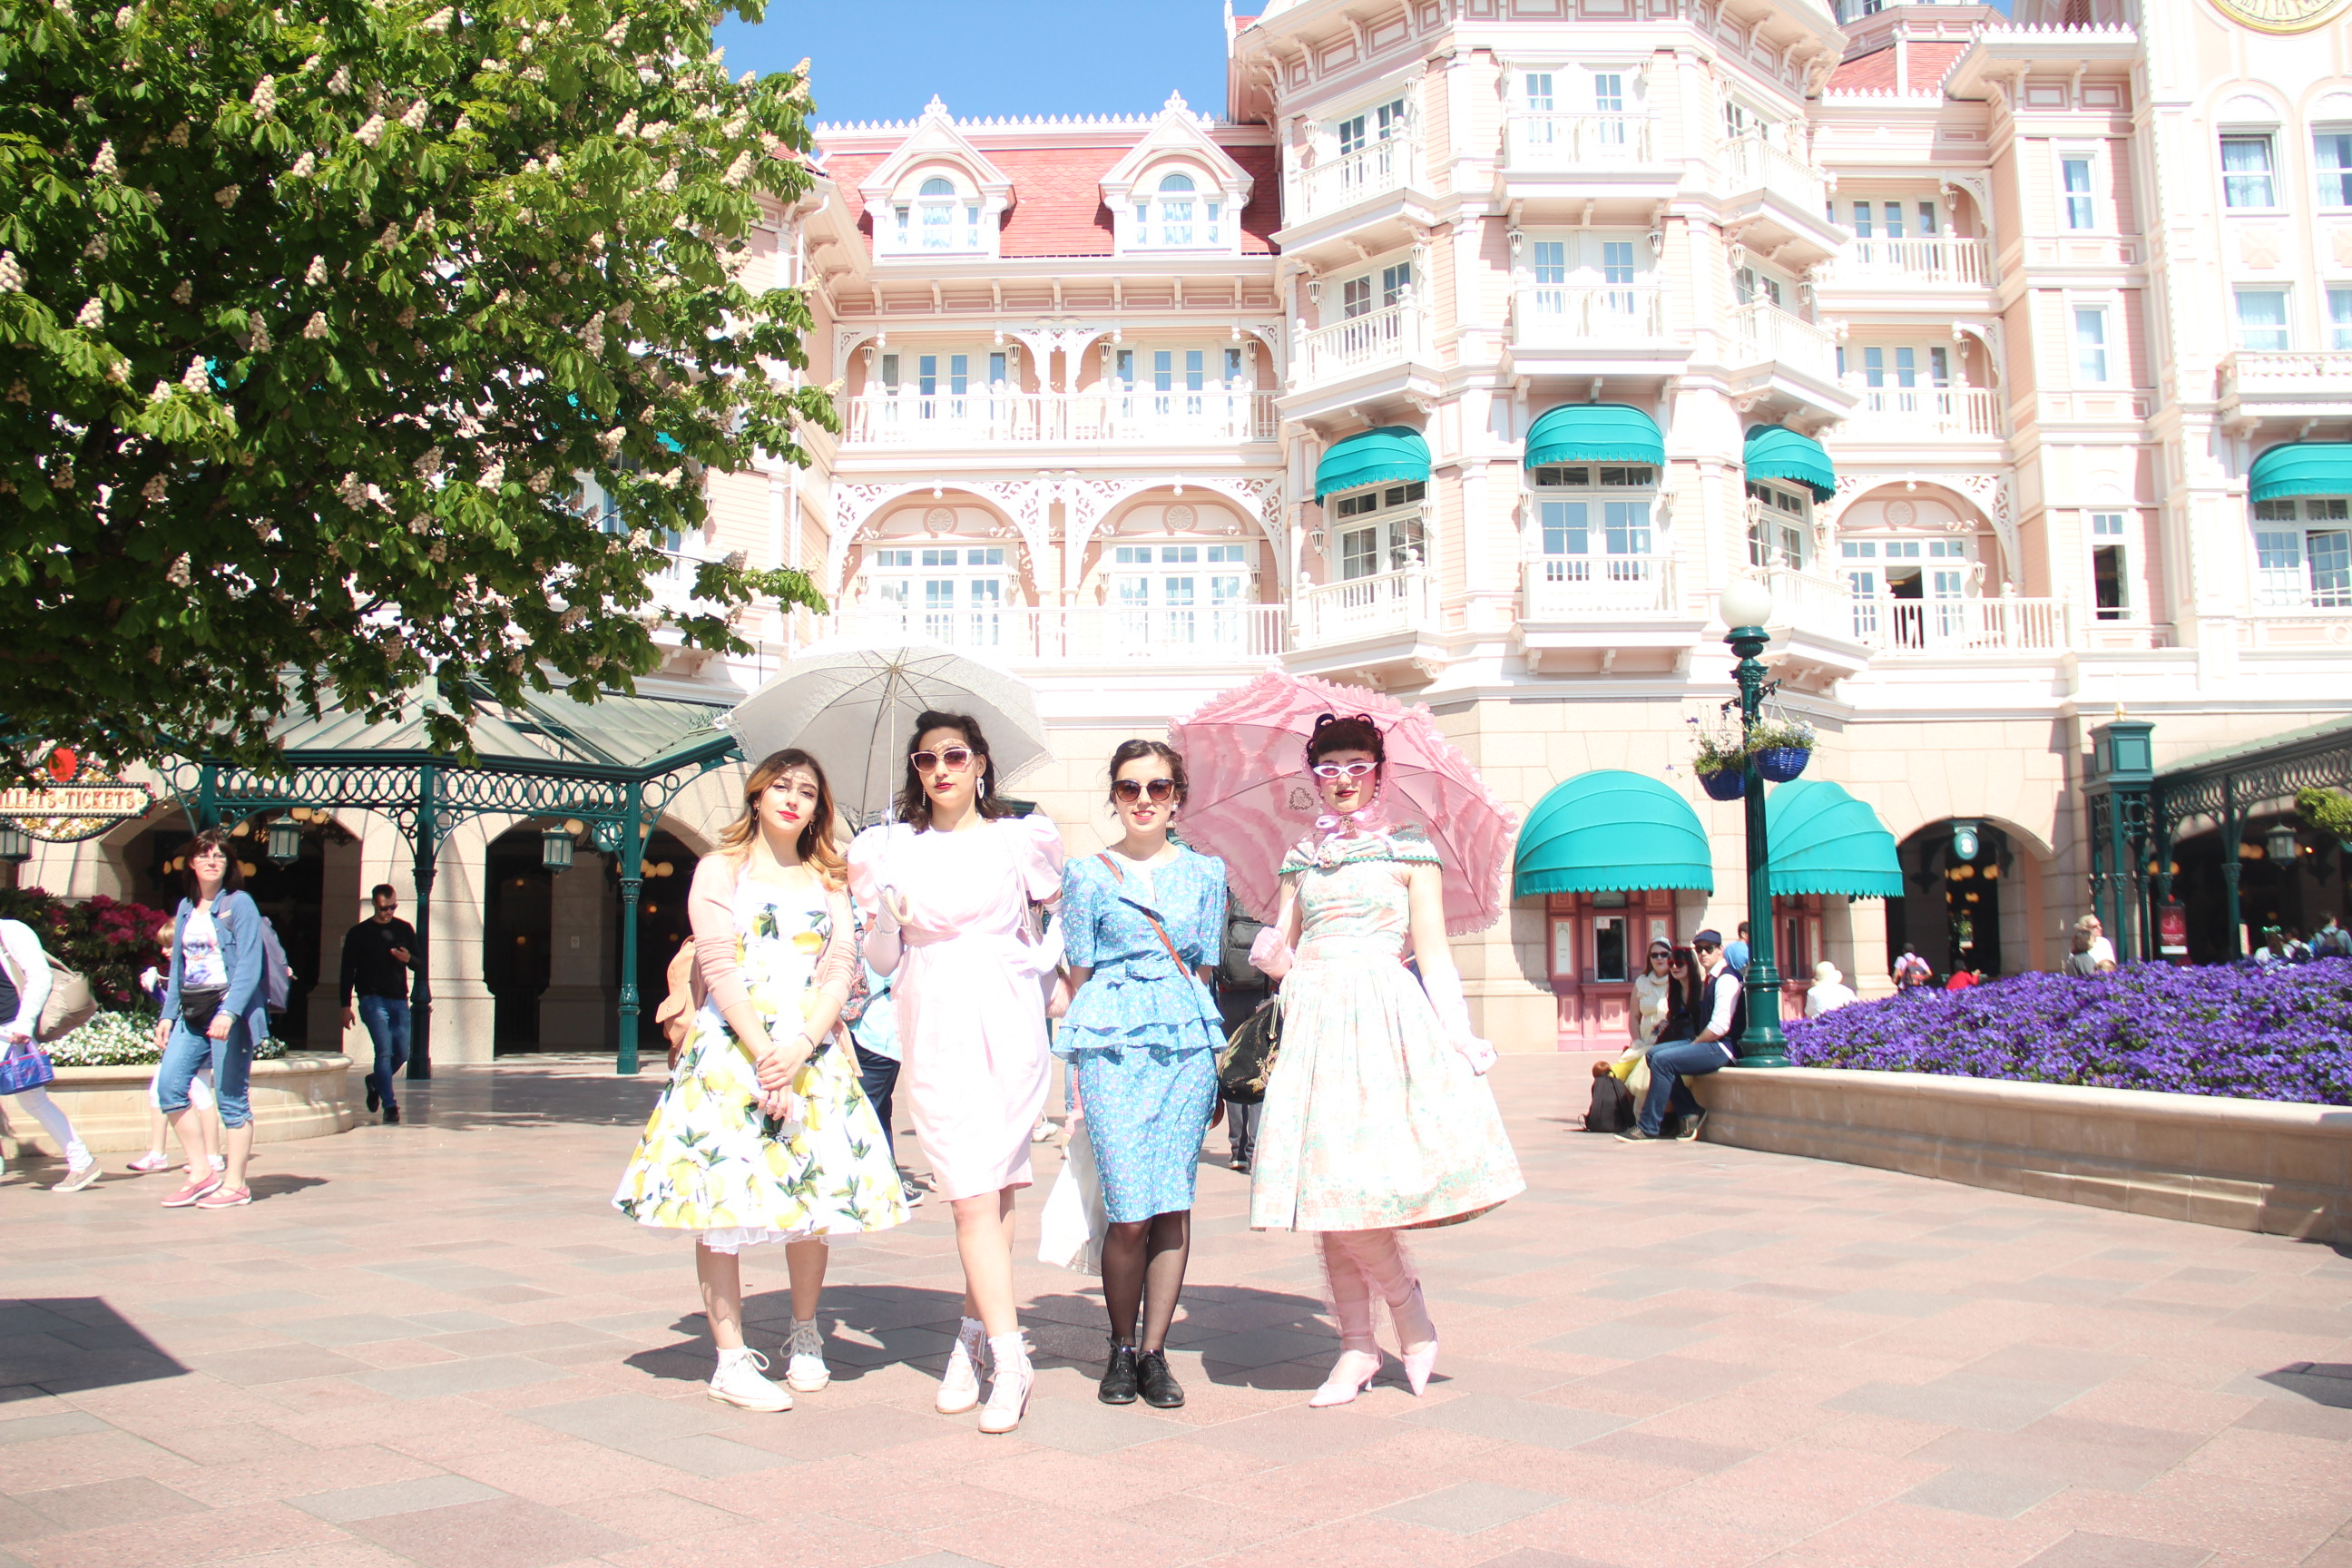 Disneyland Paris – Dapper Day 2018